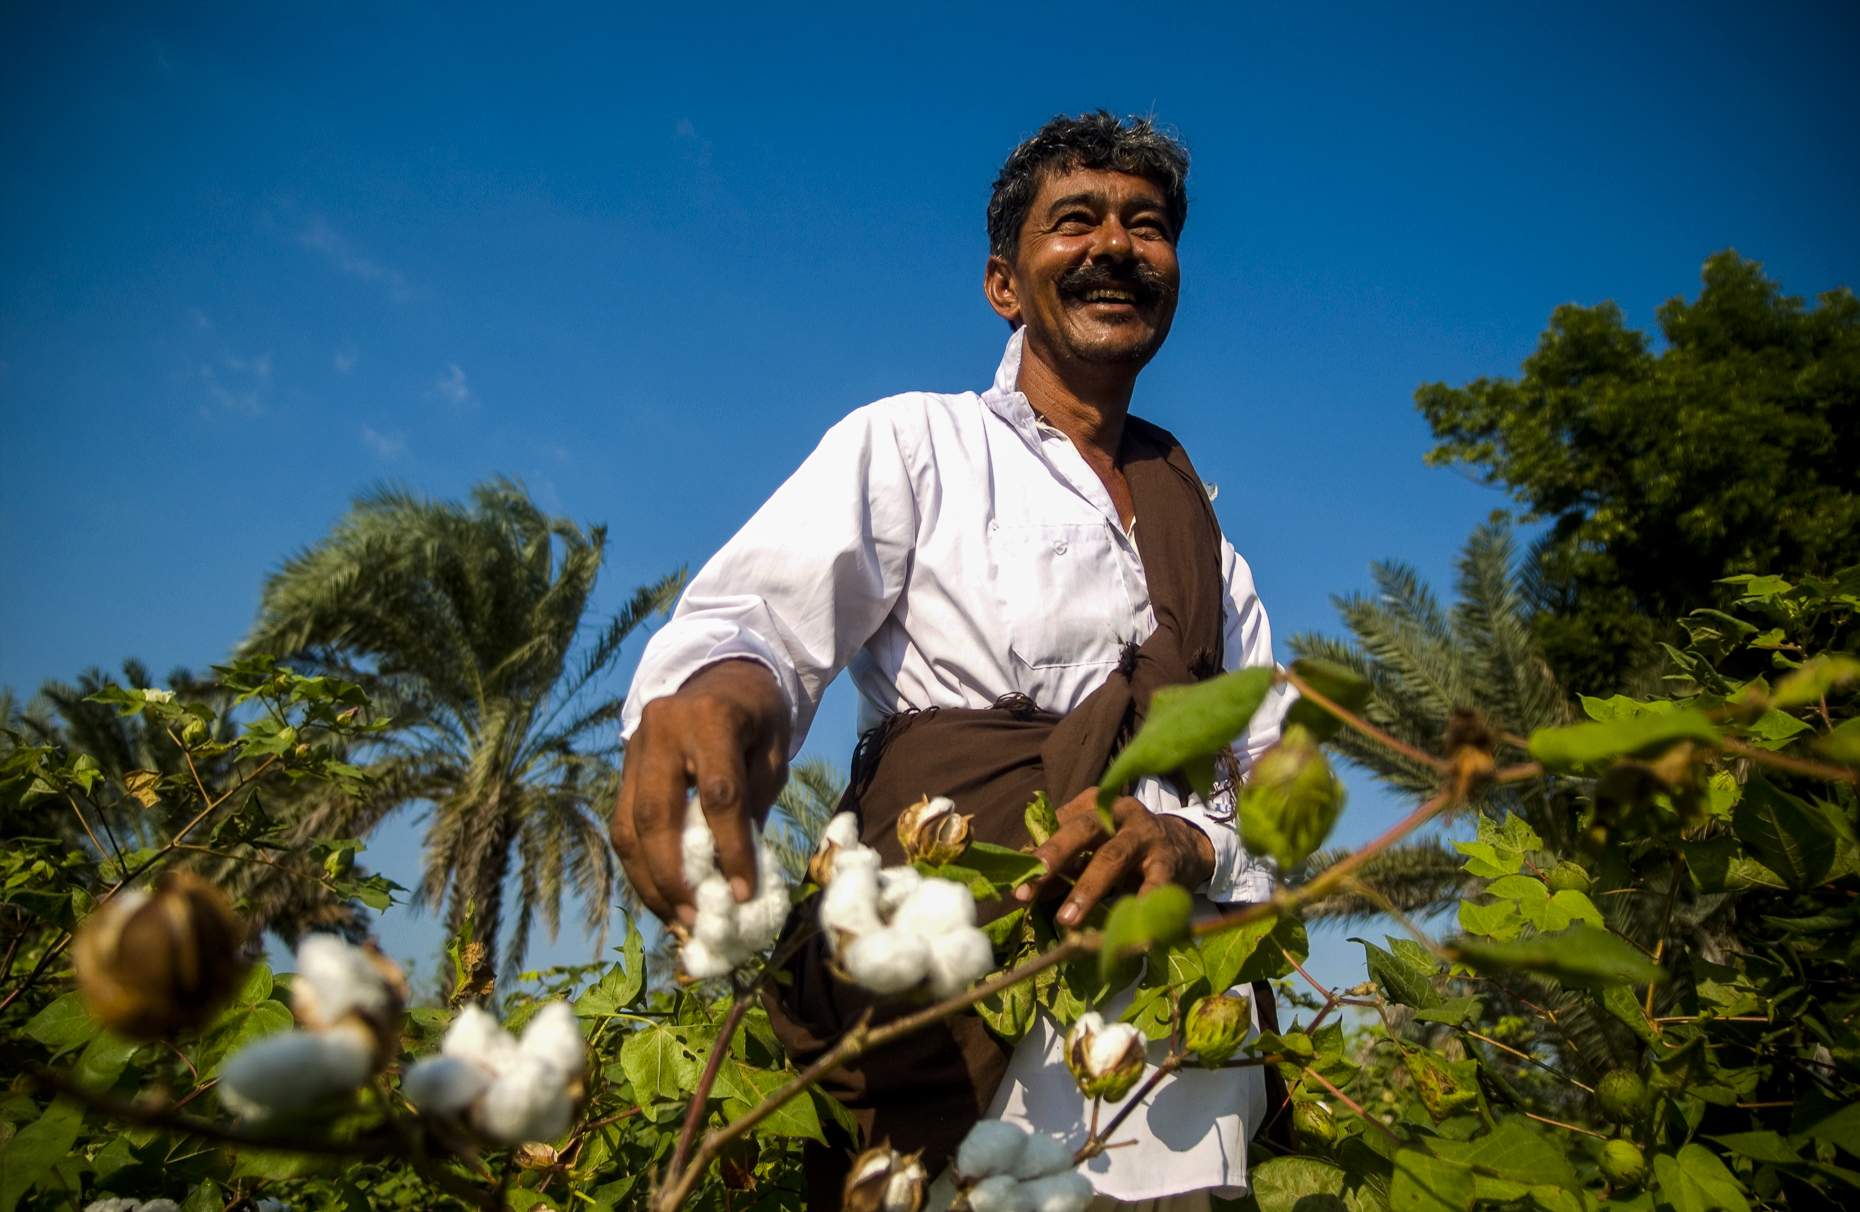 Fairtrade cotton farmer, India